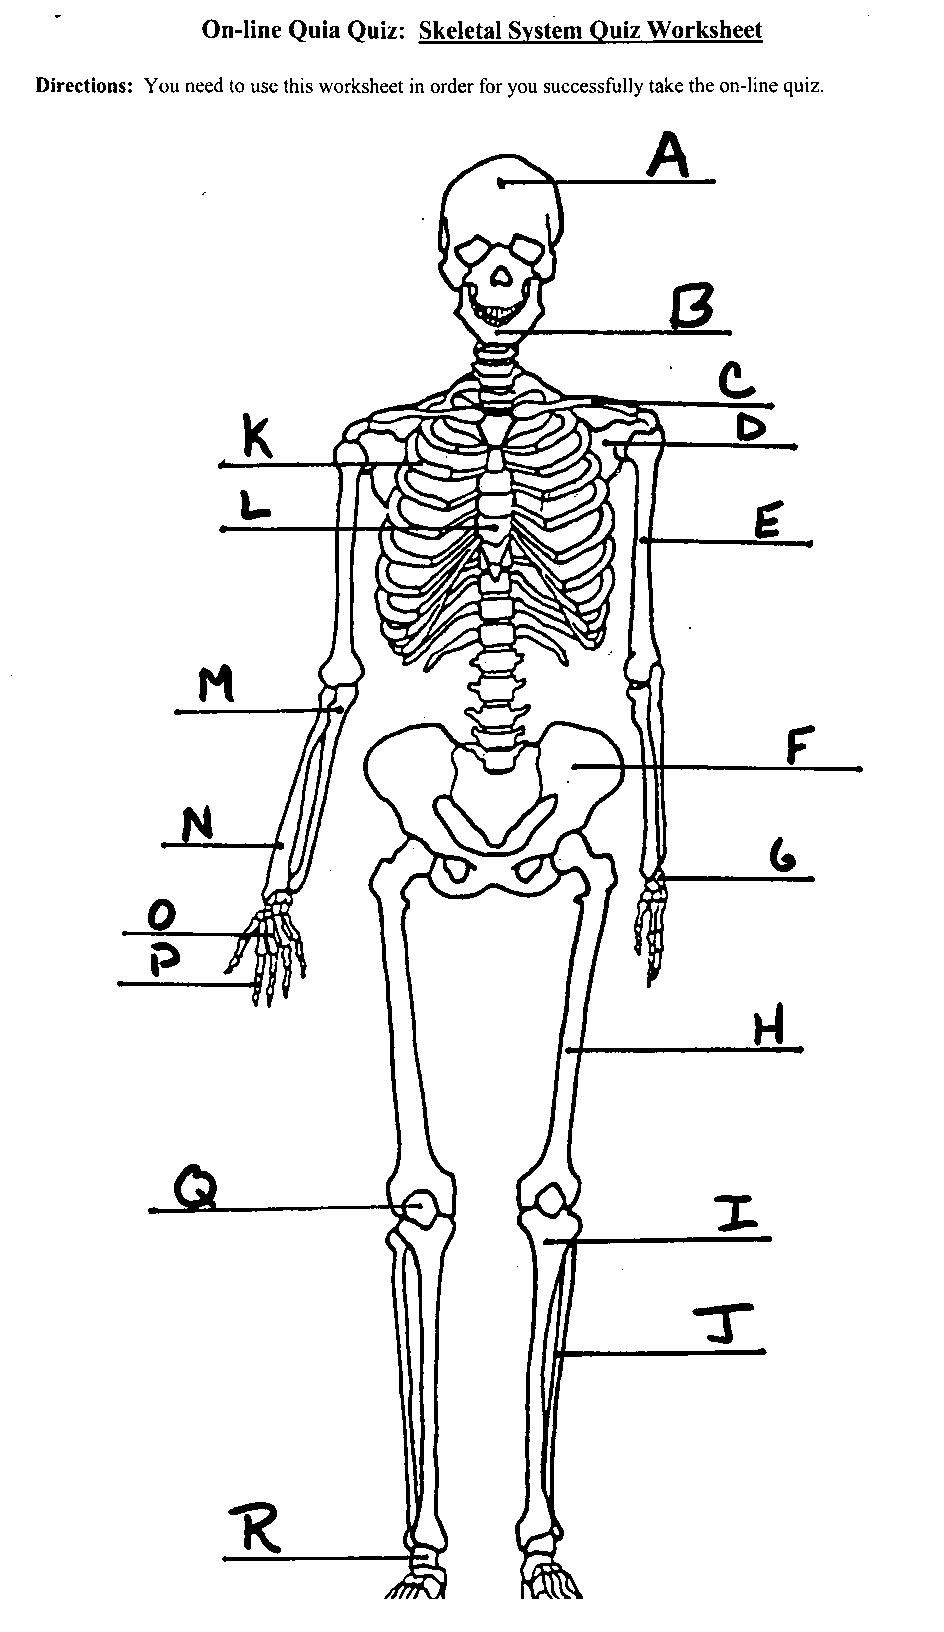 Worksheets Skeletal System Worksheet Answers image result for skeletal system labeled human skeleton labeled